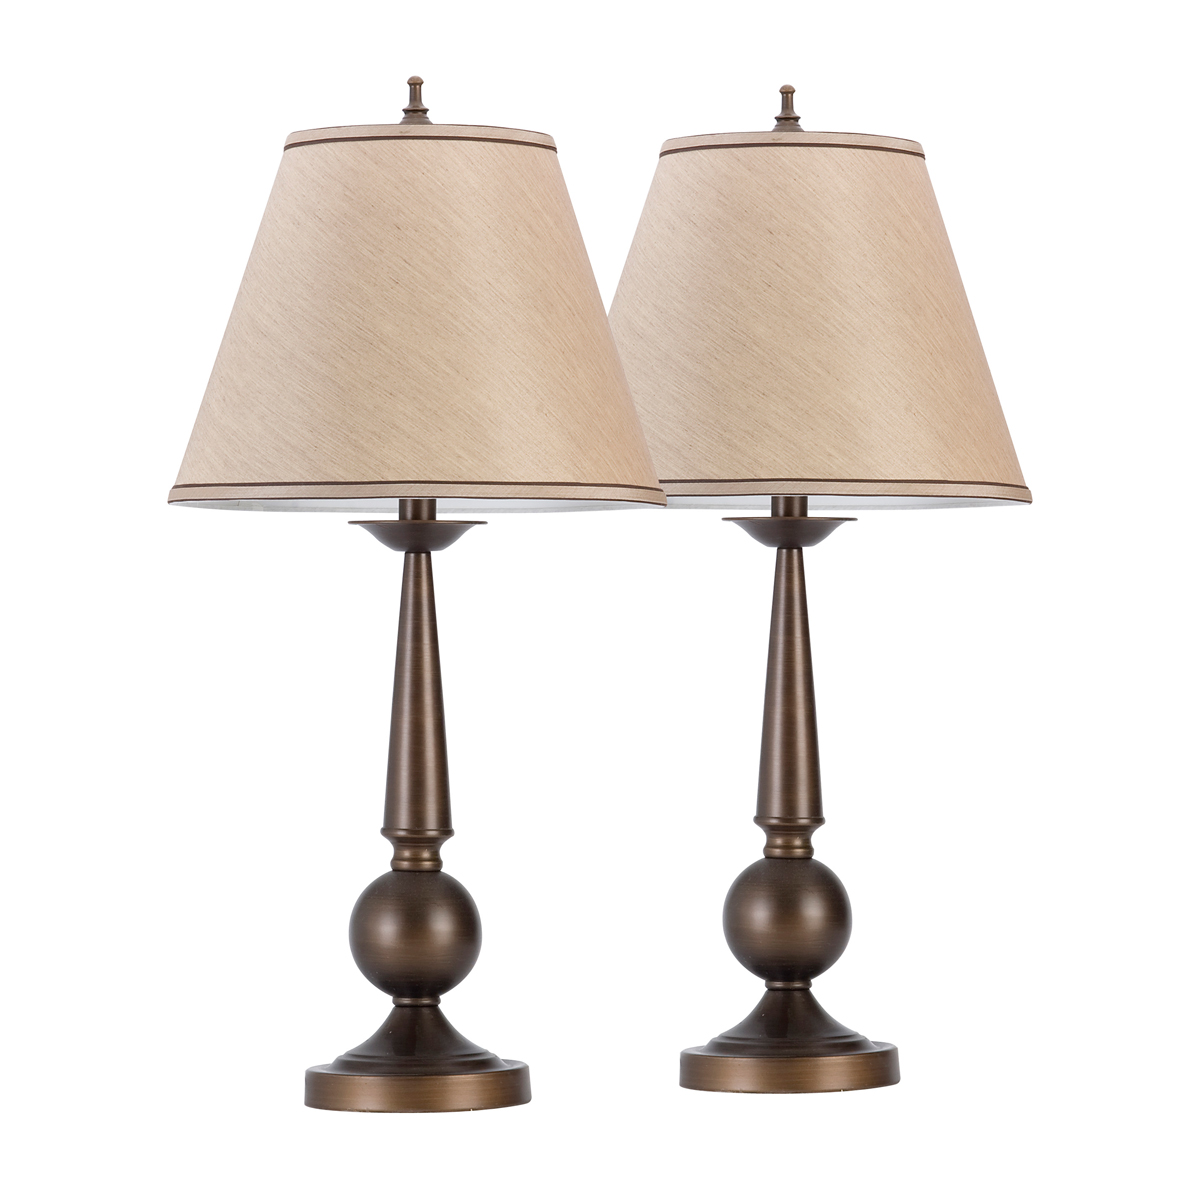 "Globe Electric 60 Watt Set of Two 27"" Bronze & Beige Table Lamps"